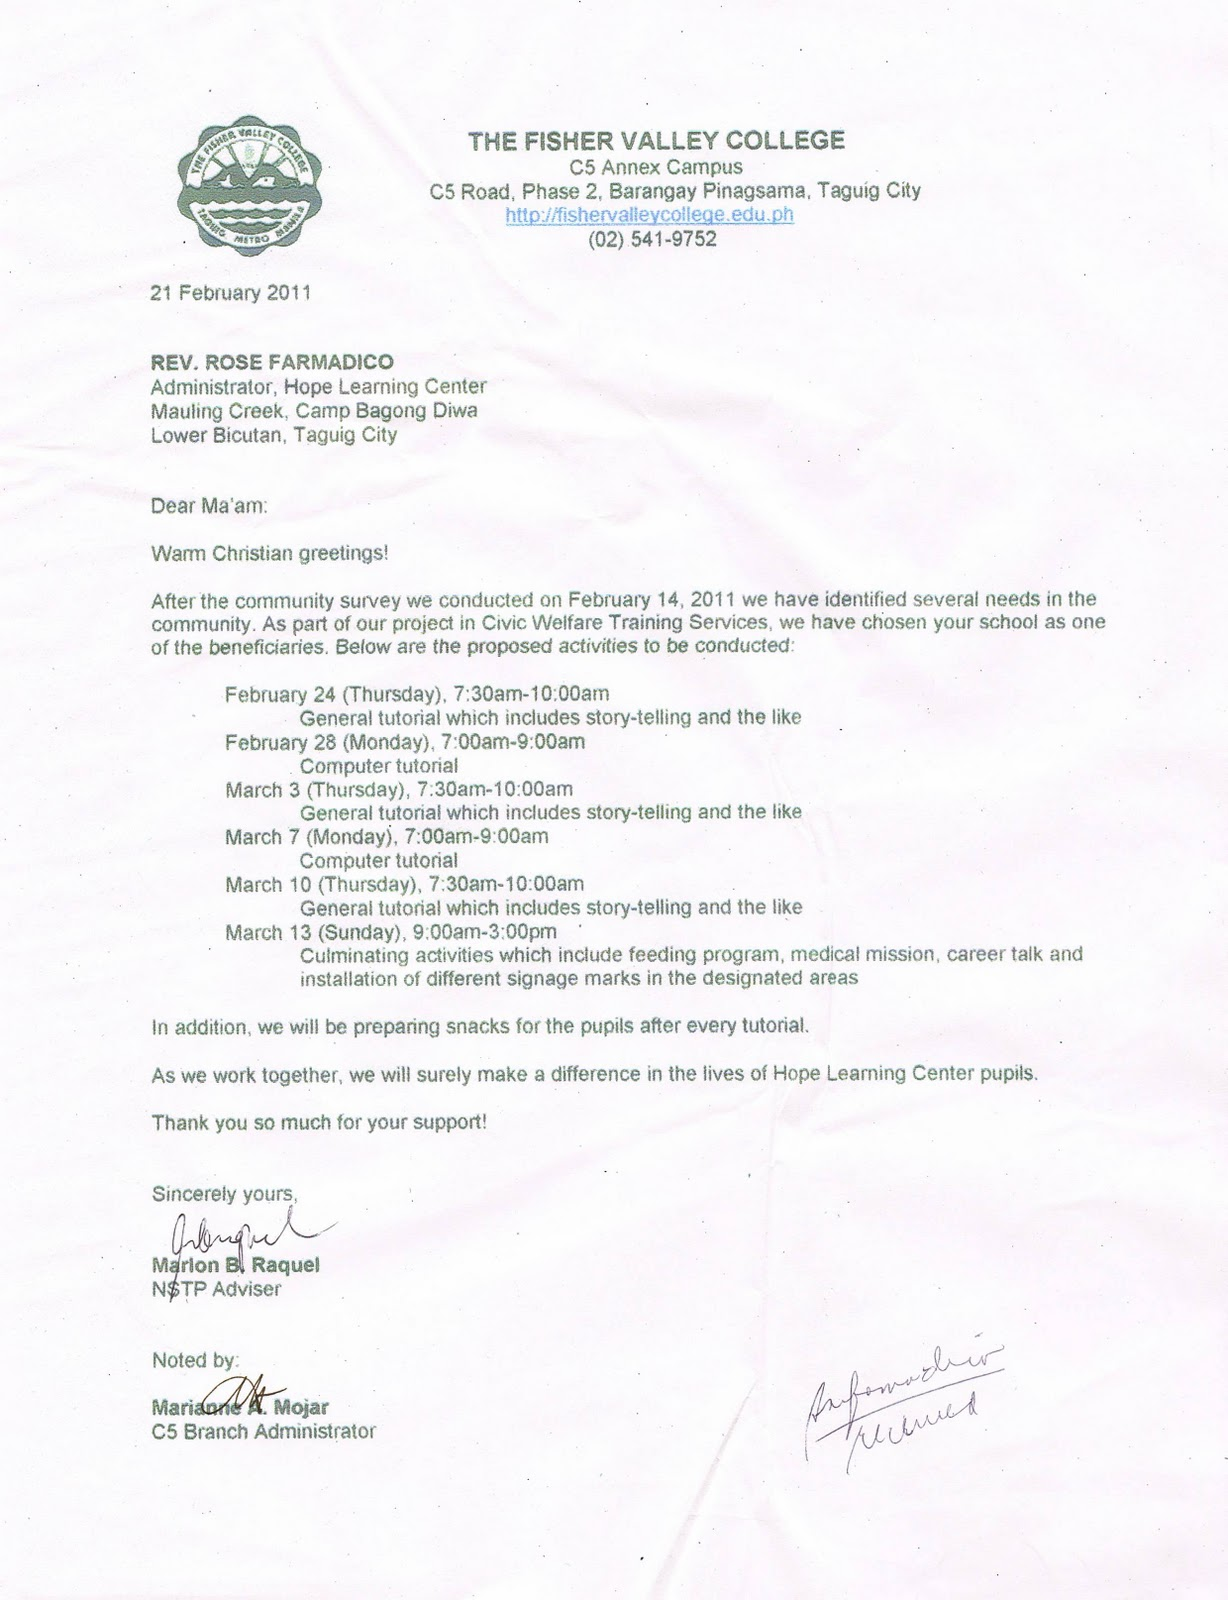 The fisher valley college february 2011 letter to hope learning center lower bicutan taguig city yelopaper Gallery